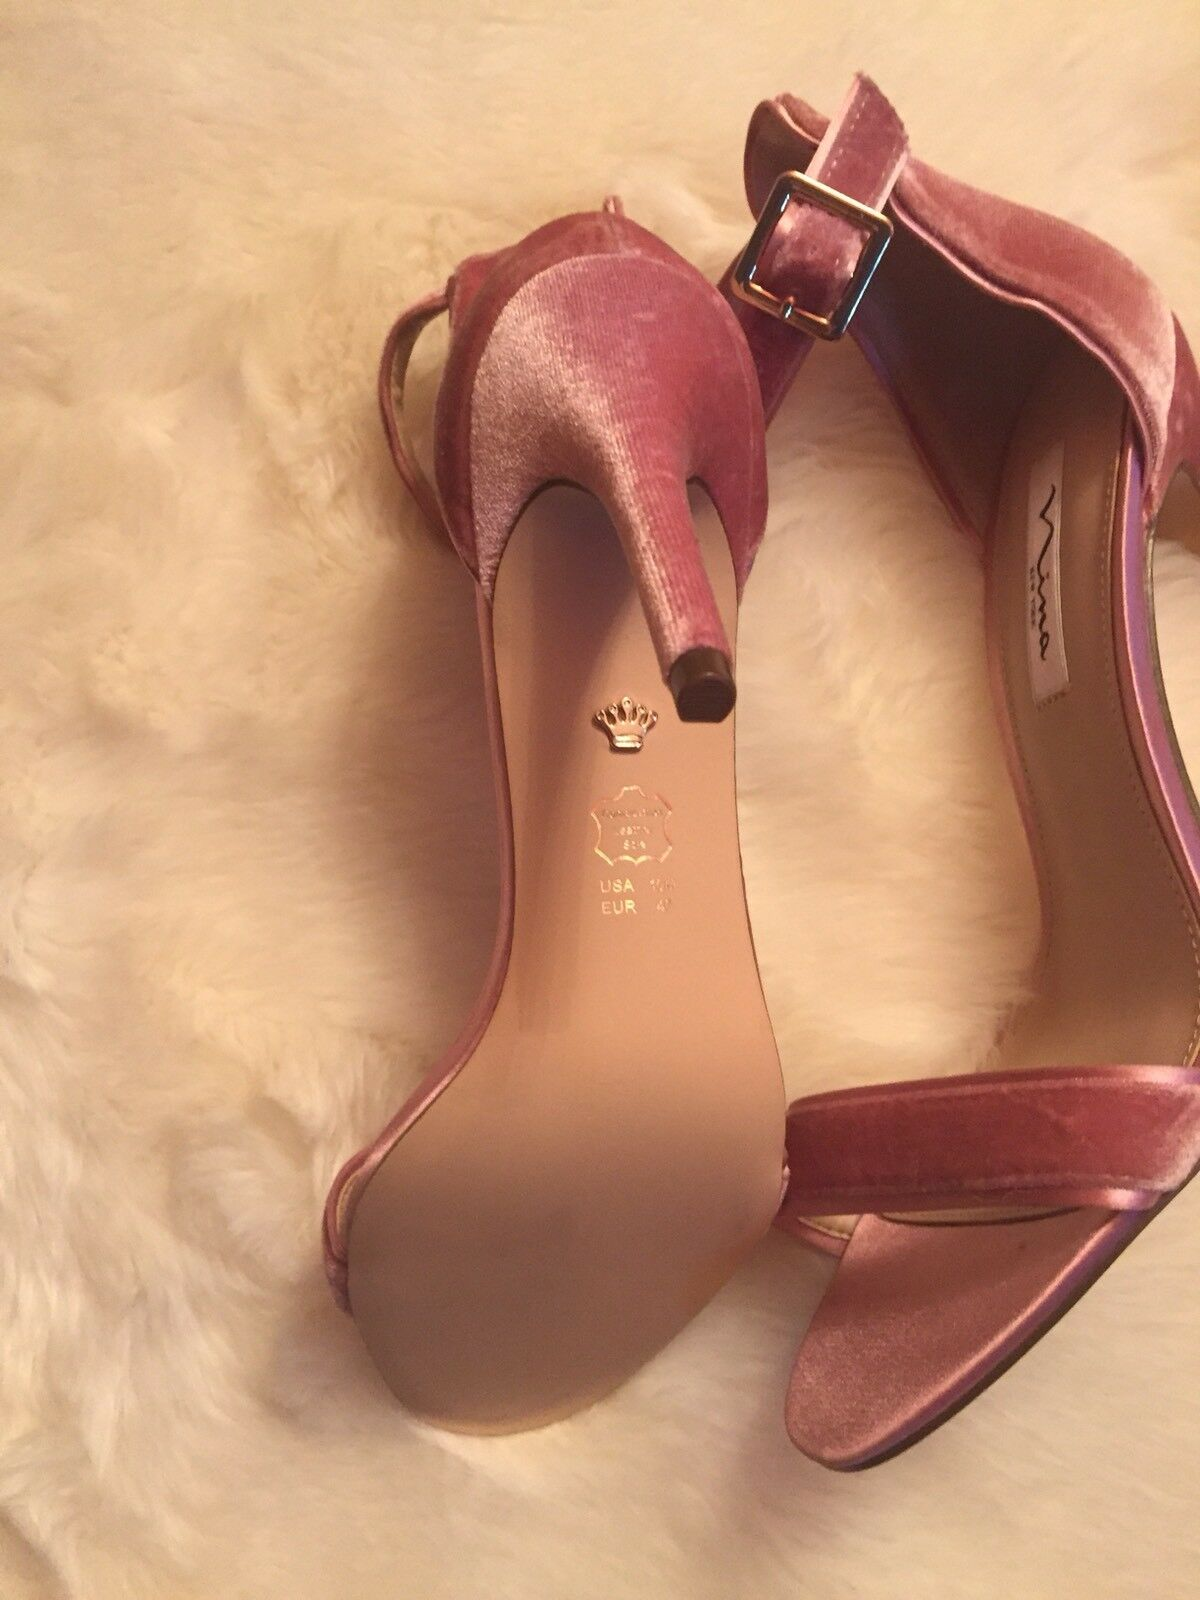 Nina new york Damenschuhe 10 Sweet Heel Rose High Heel Sweet Velvet Sandale 4cb022